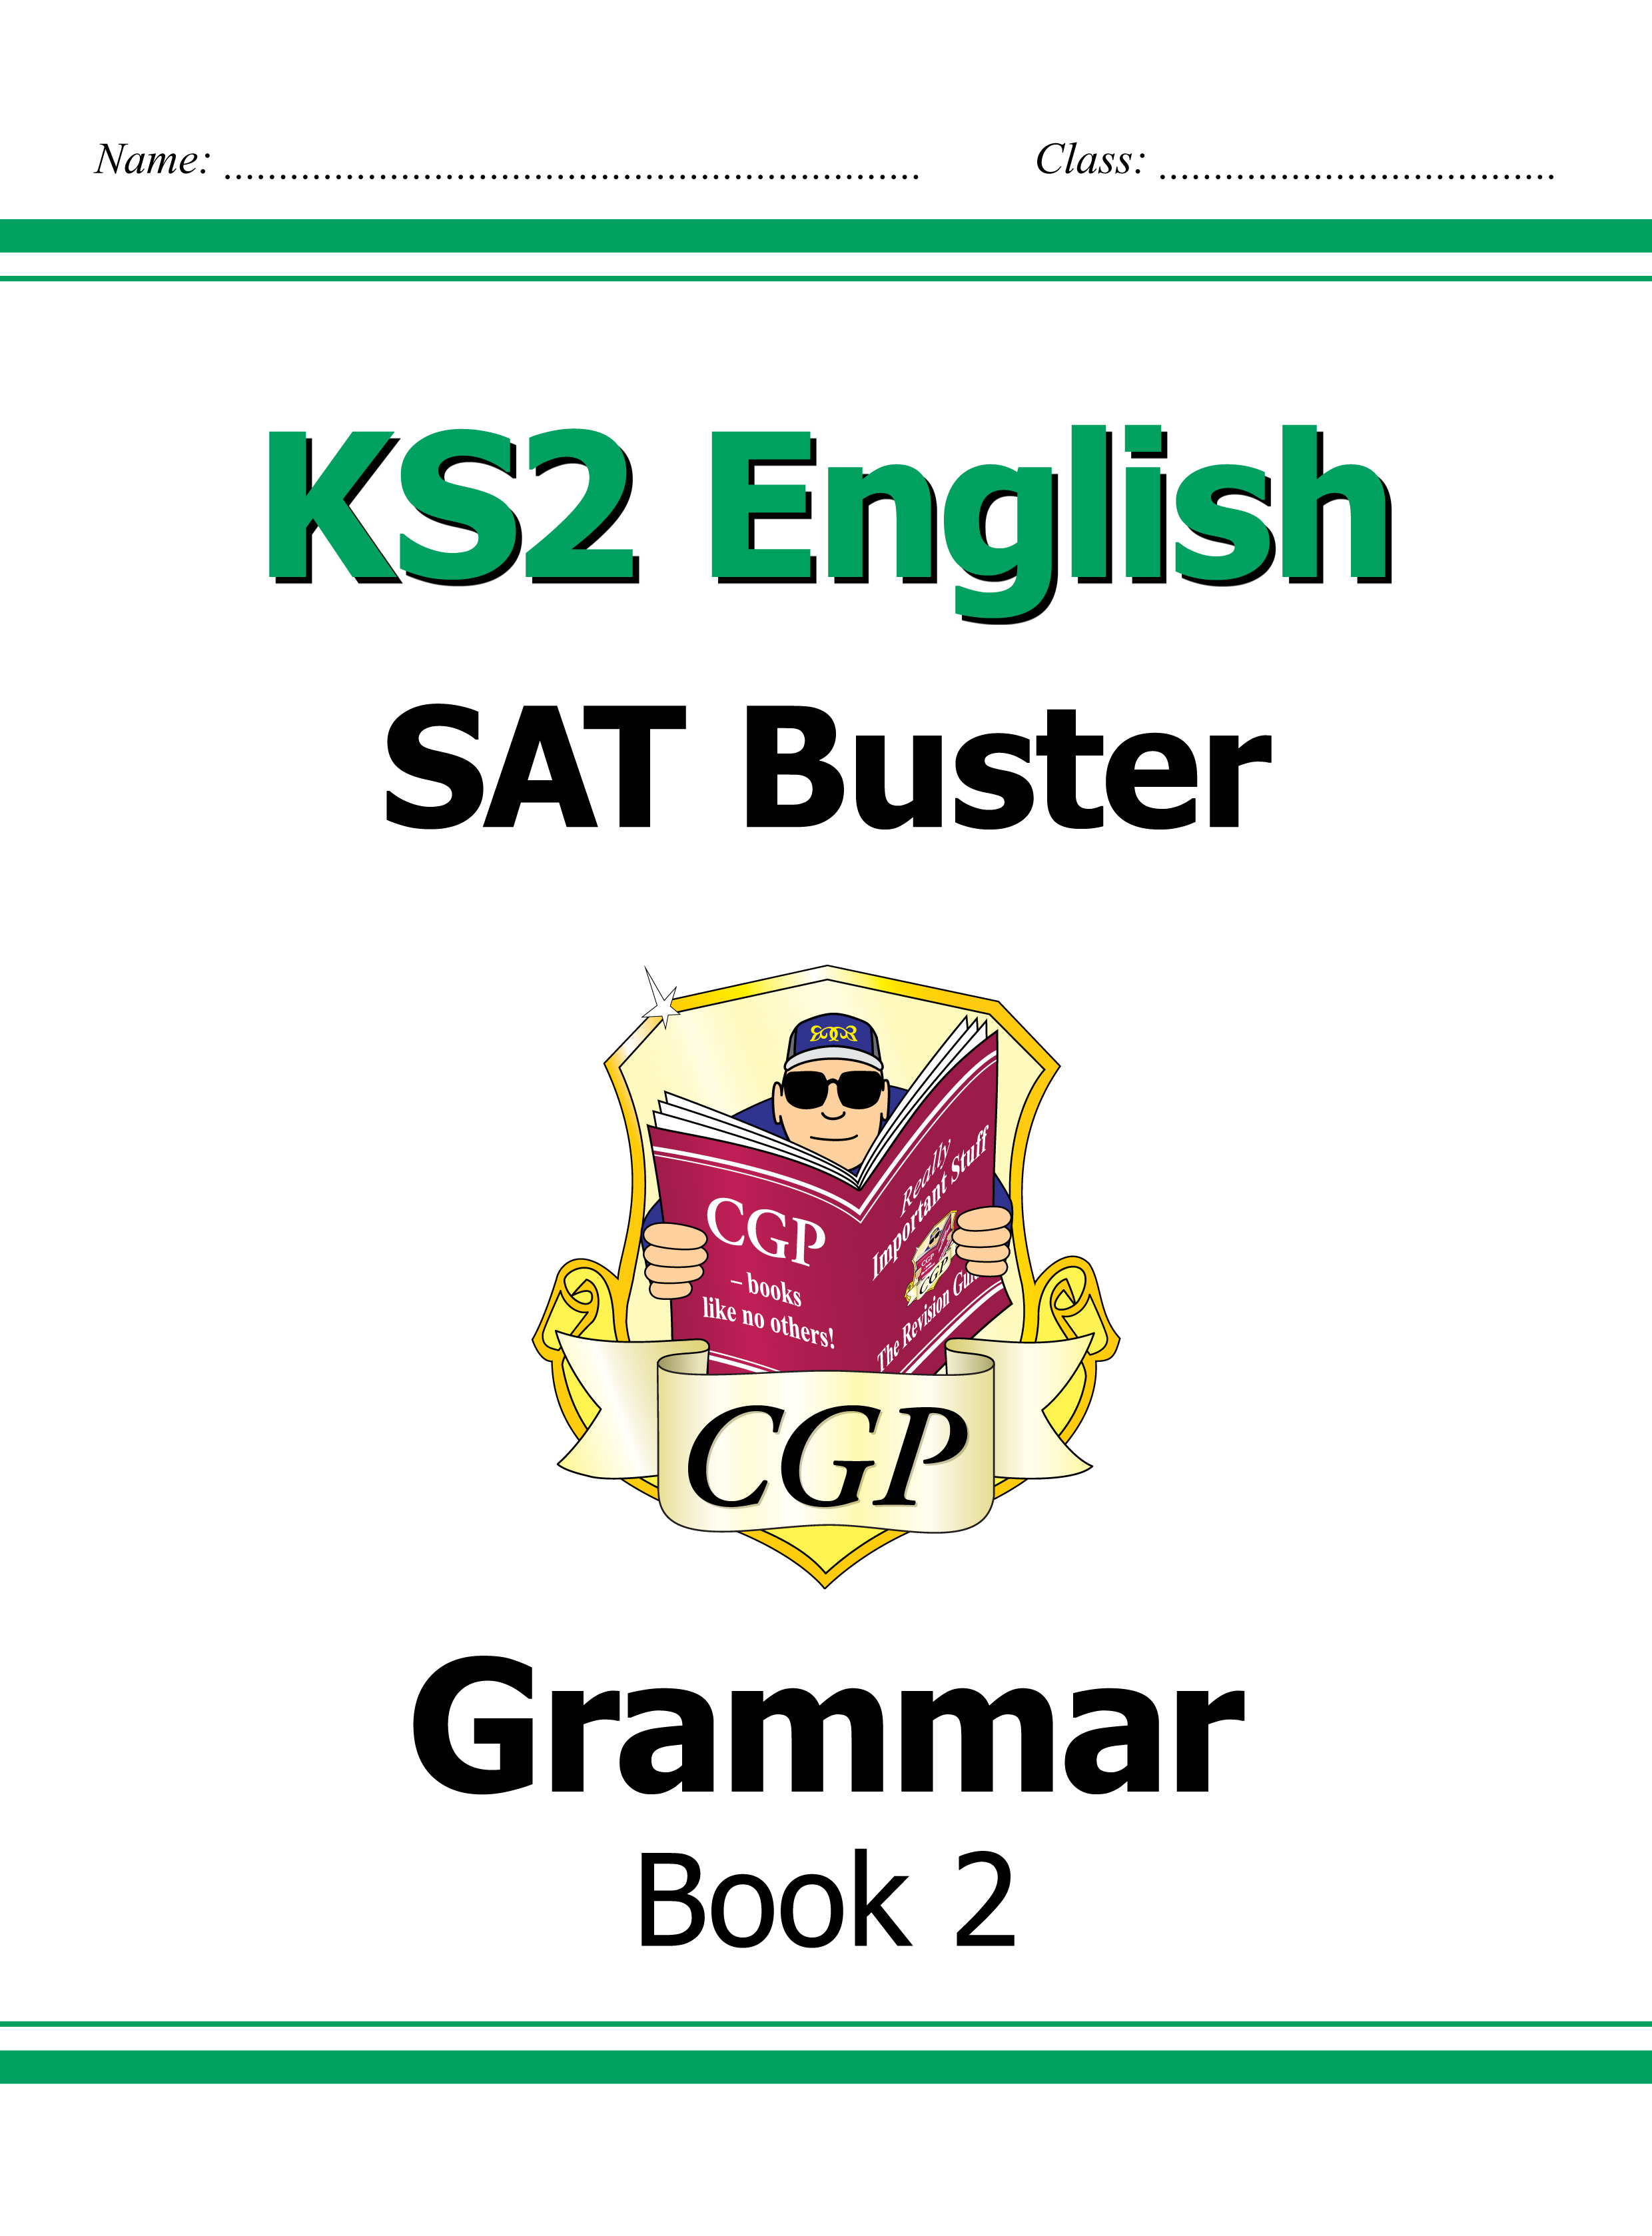 E6G222DK - KS2 English SAT Buster - Grammar Book 2 (for tests in 2018 and beyond)